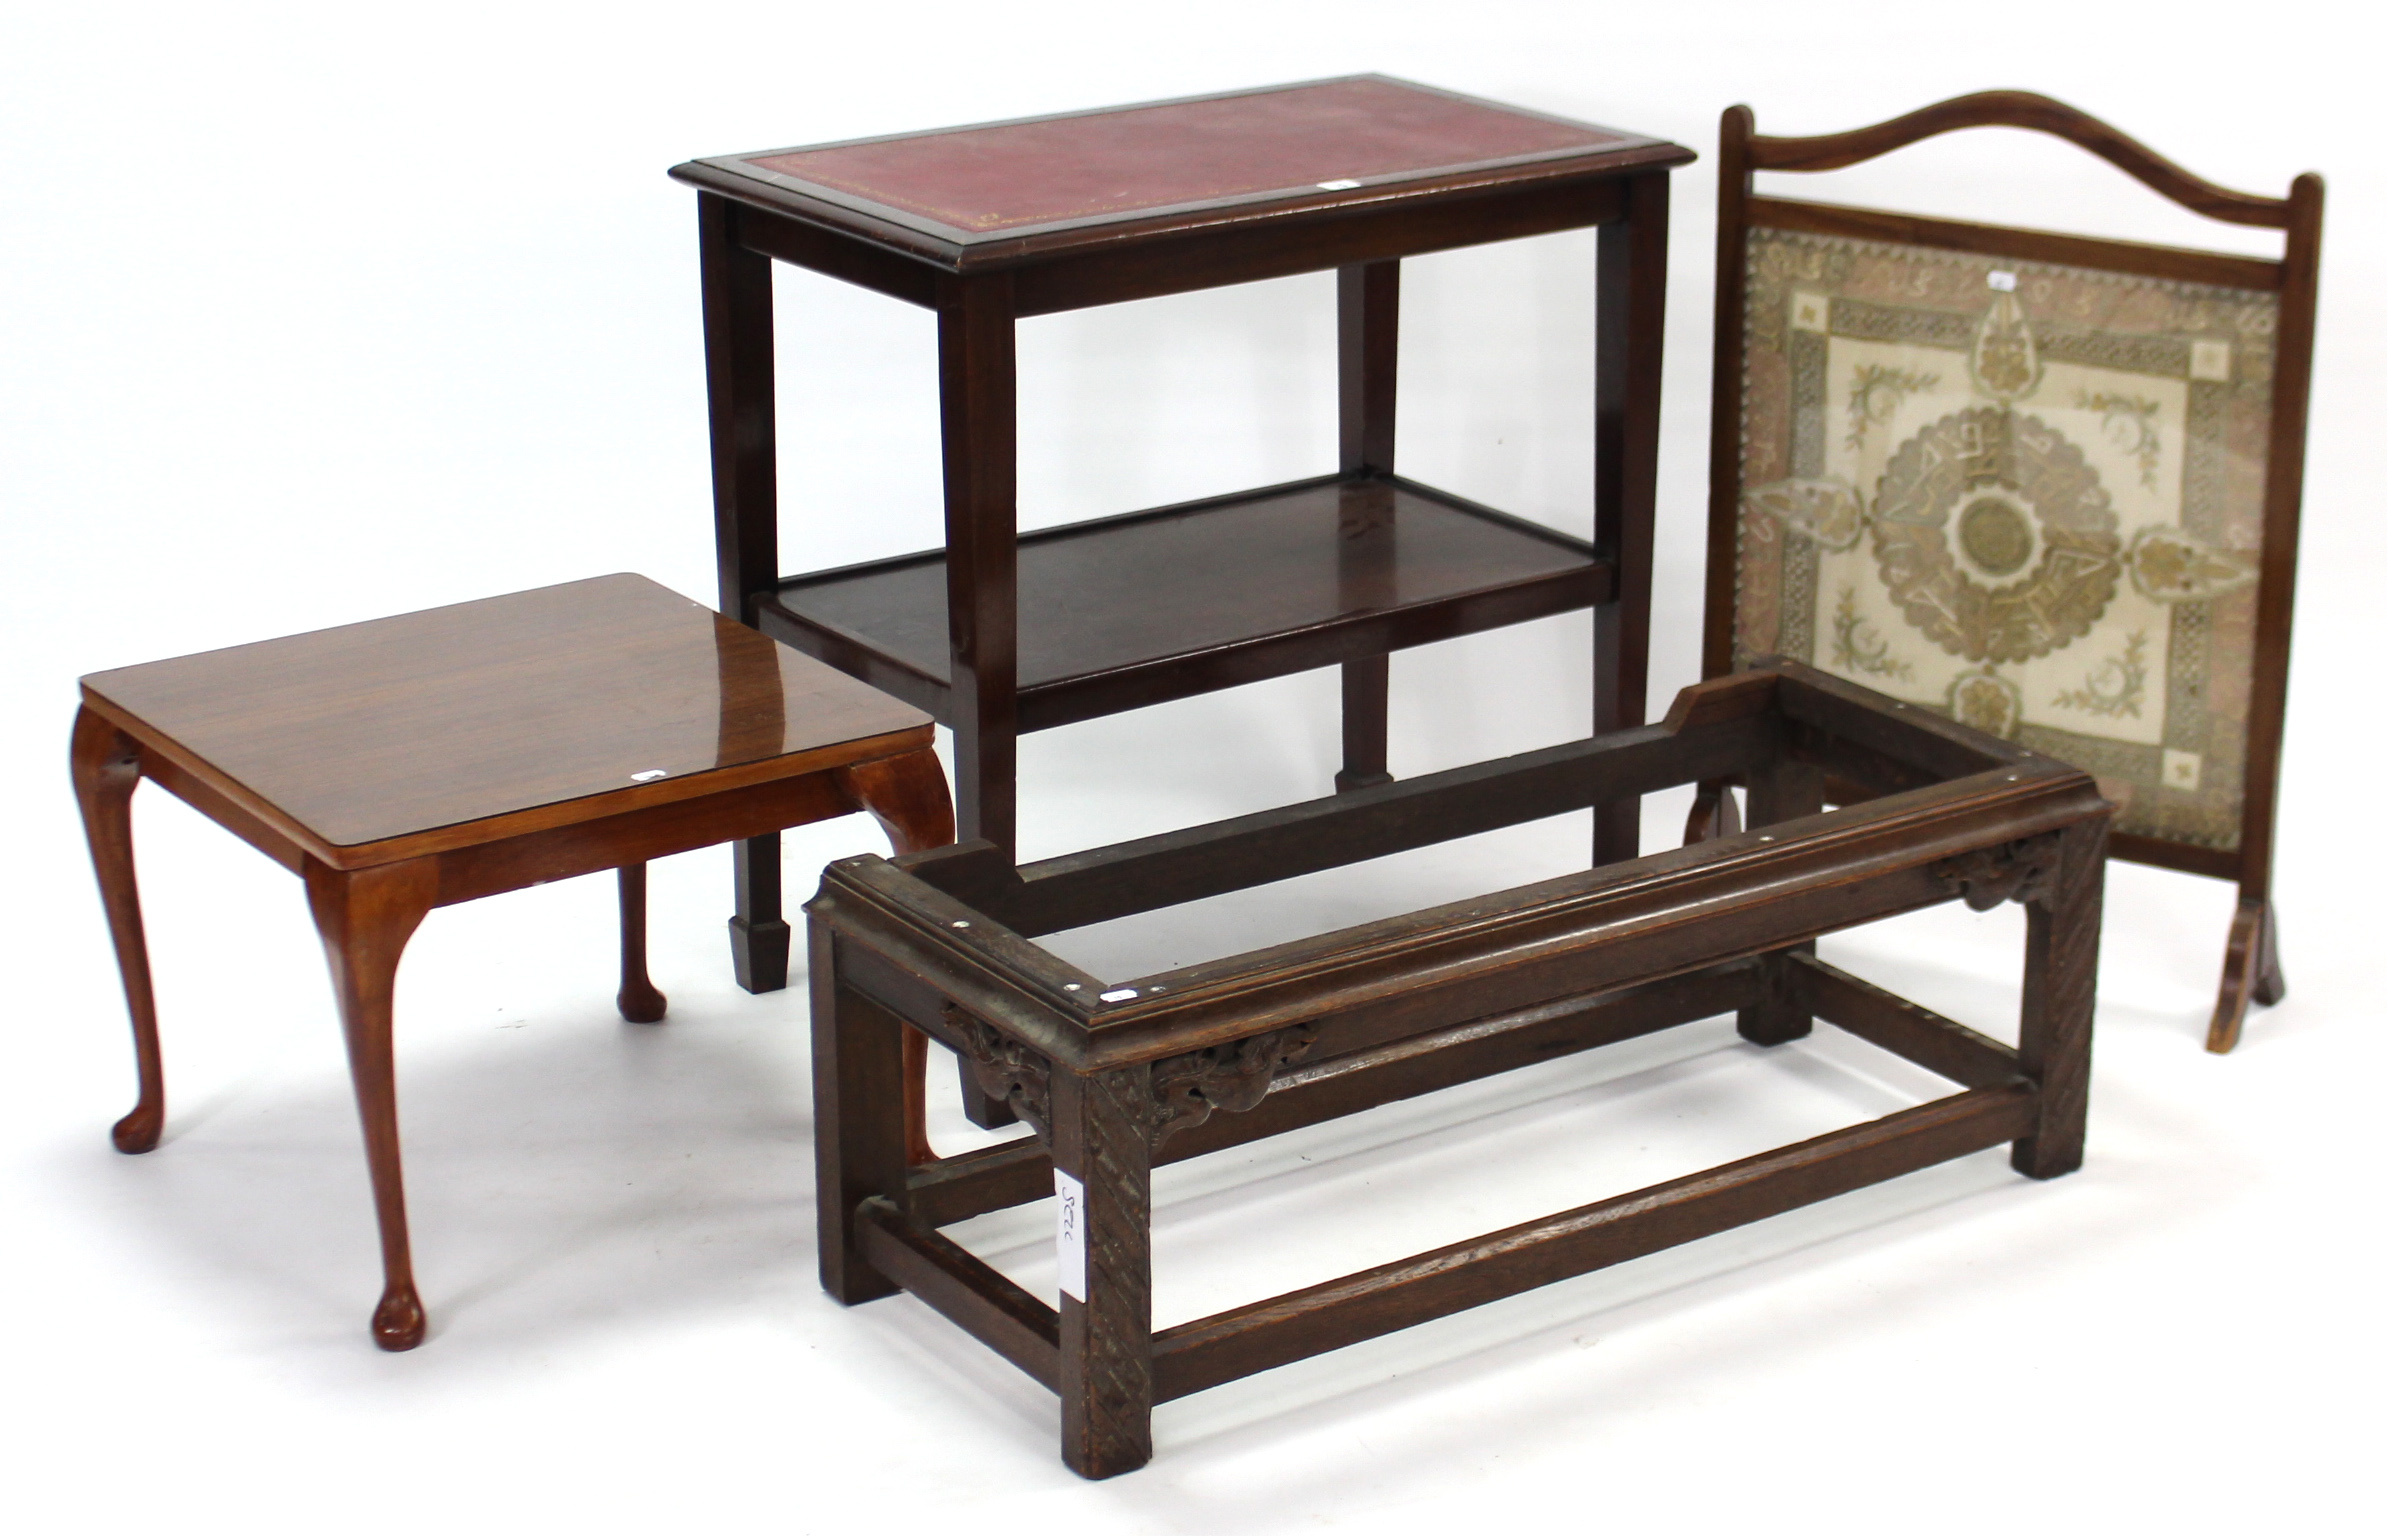 Lot 65 - A mahogany rectangular two-tier occasional table inset gilt-tooled crimson leather to the upper